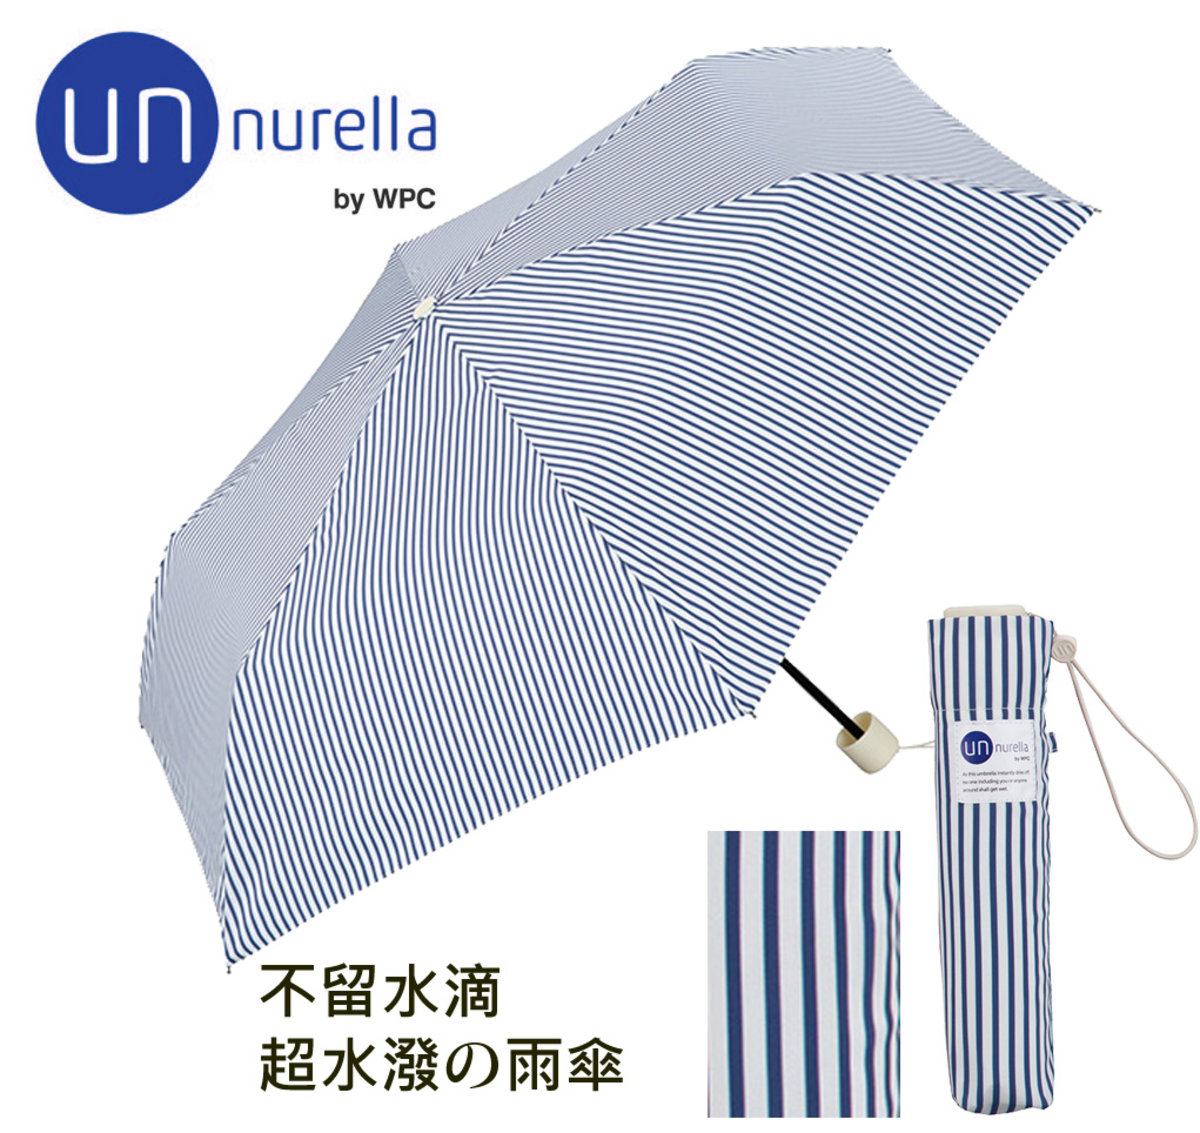 (Professional from Japan)Unnurella by WPC UN-106-S/BL Folding Umbrella